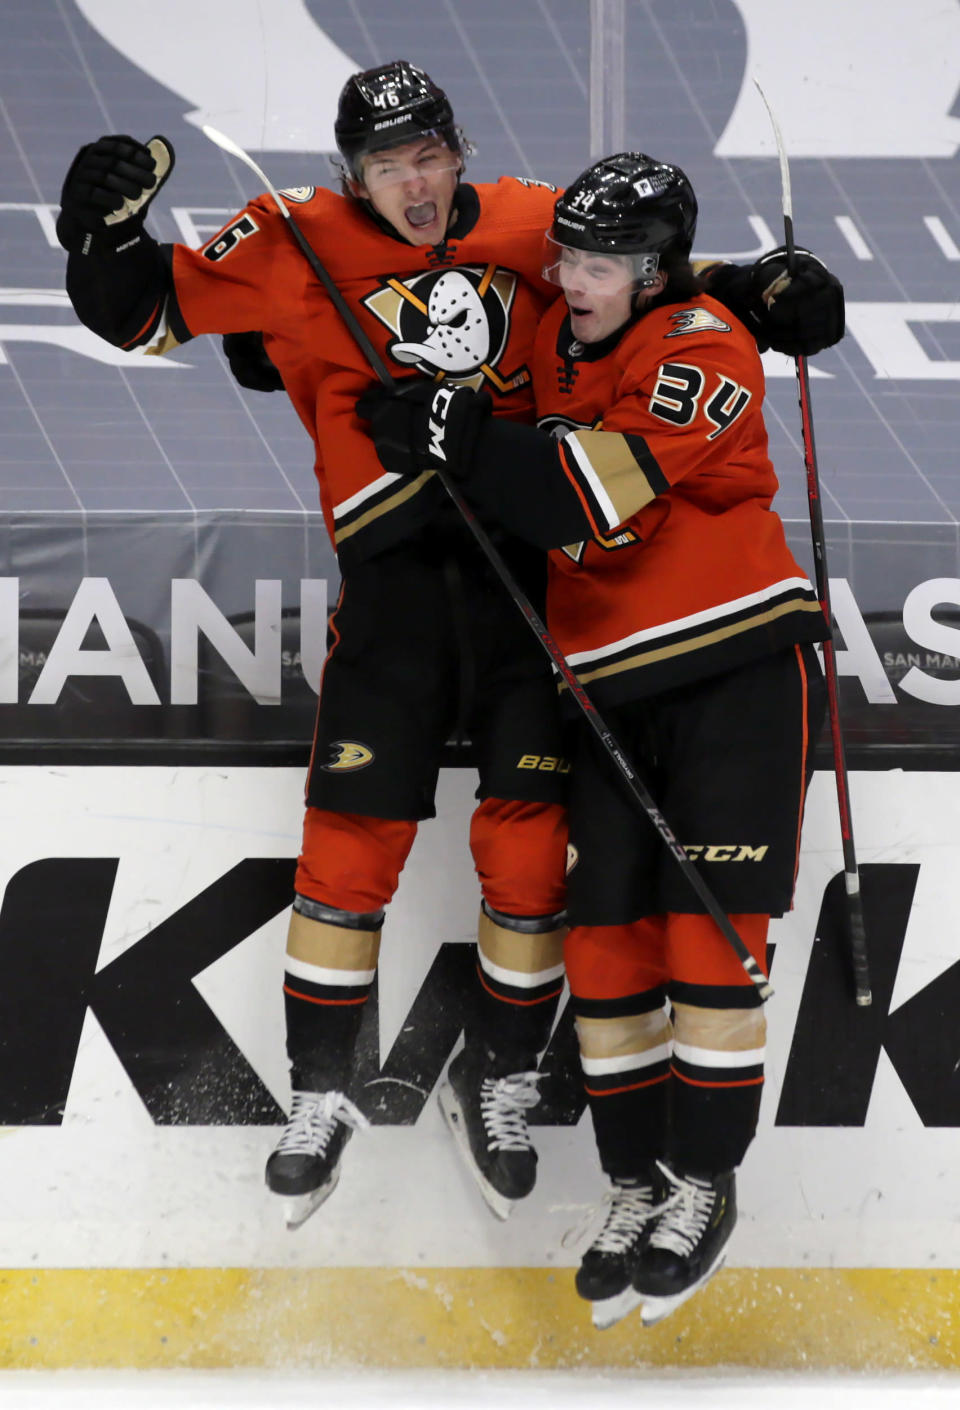 Anaheim Ducks center Trevor Zegras, left, celebrates with defenseman Jamie Drysdale after his first NHL goal, against the Arizona Coyotes during the second period of a hockey game in Anaheim, Calif., Thursday, March 18, 2021. (AP Photo/Alex Gallardo)